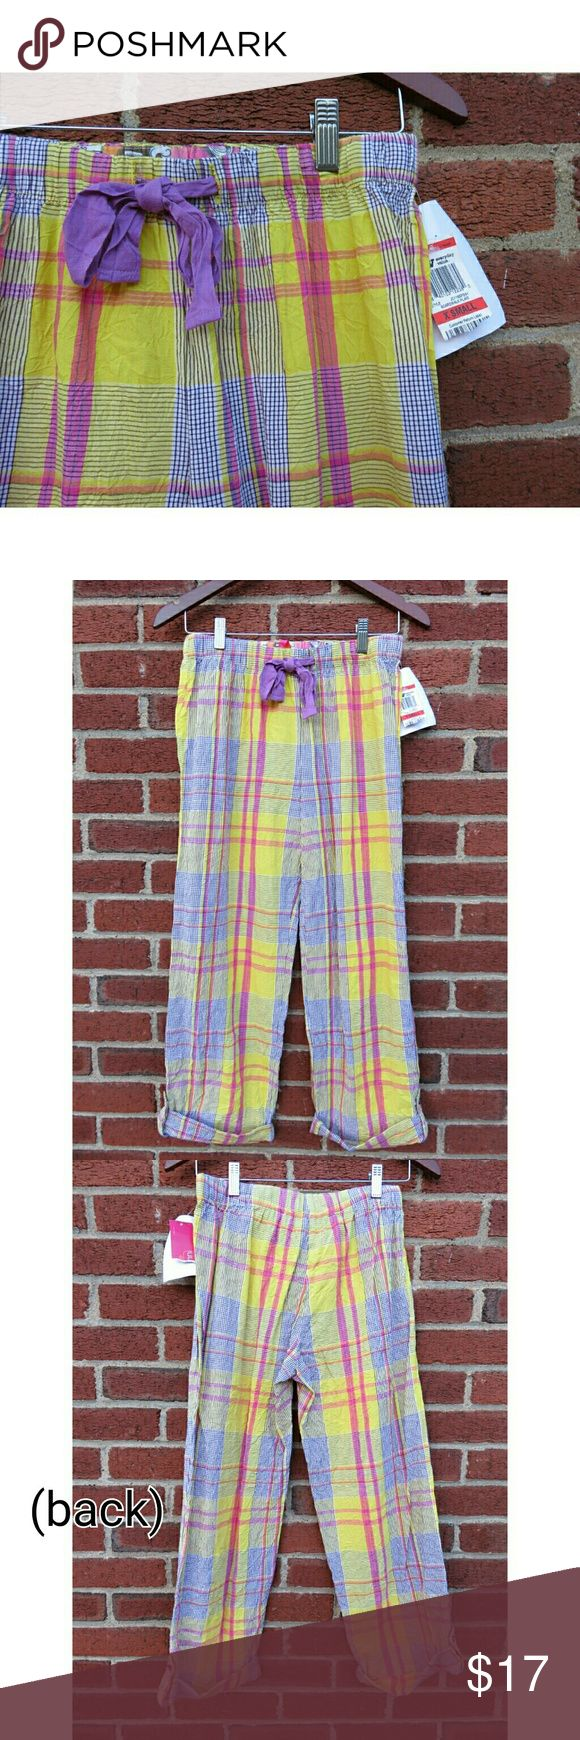 "NWT Plaid PJ Pants Jenni by Jennifer Moore Gift +Jenni by Jennifer Moore /Macy's new with tags and never worn pajama pants. Purple, pink, yellow, and gray plaid/flannel pattern. Drawstring waist, cute button cuff on bottom hem, wide leg. Junior's ladies size Extra Small. Lying flat they measure 13.5"" across waist, about 9.5-10"" rise, 18"" across hips--loose fitting. Buttoned cuff at the hem and measure about 25"" cropped/Capri inseam. Nice lightweight waffle/crinkle cotton. Makes a great gift…"